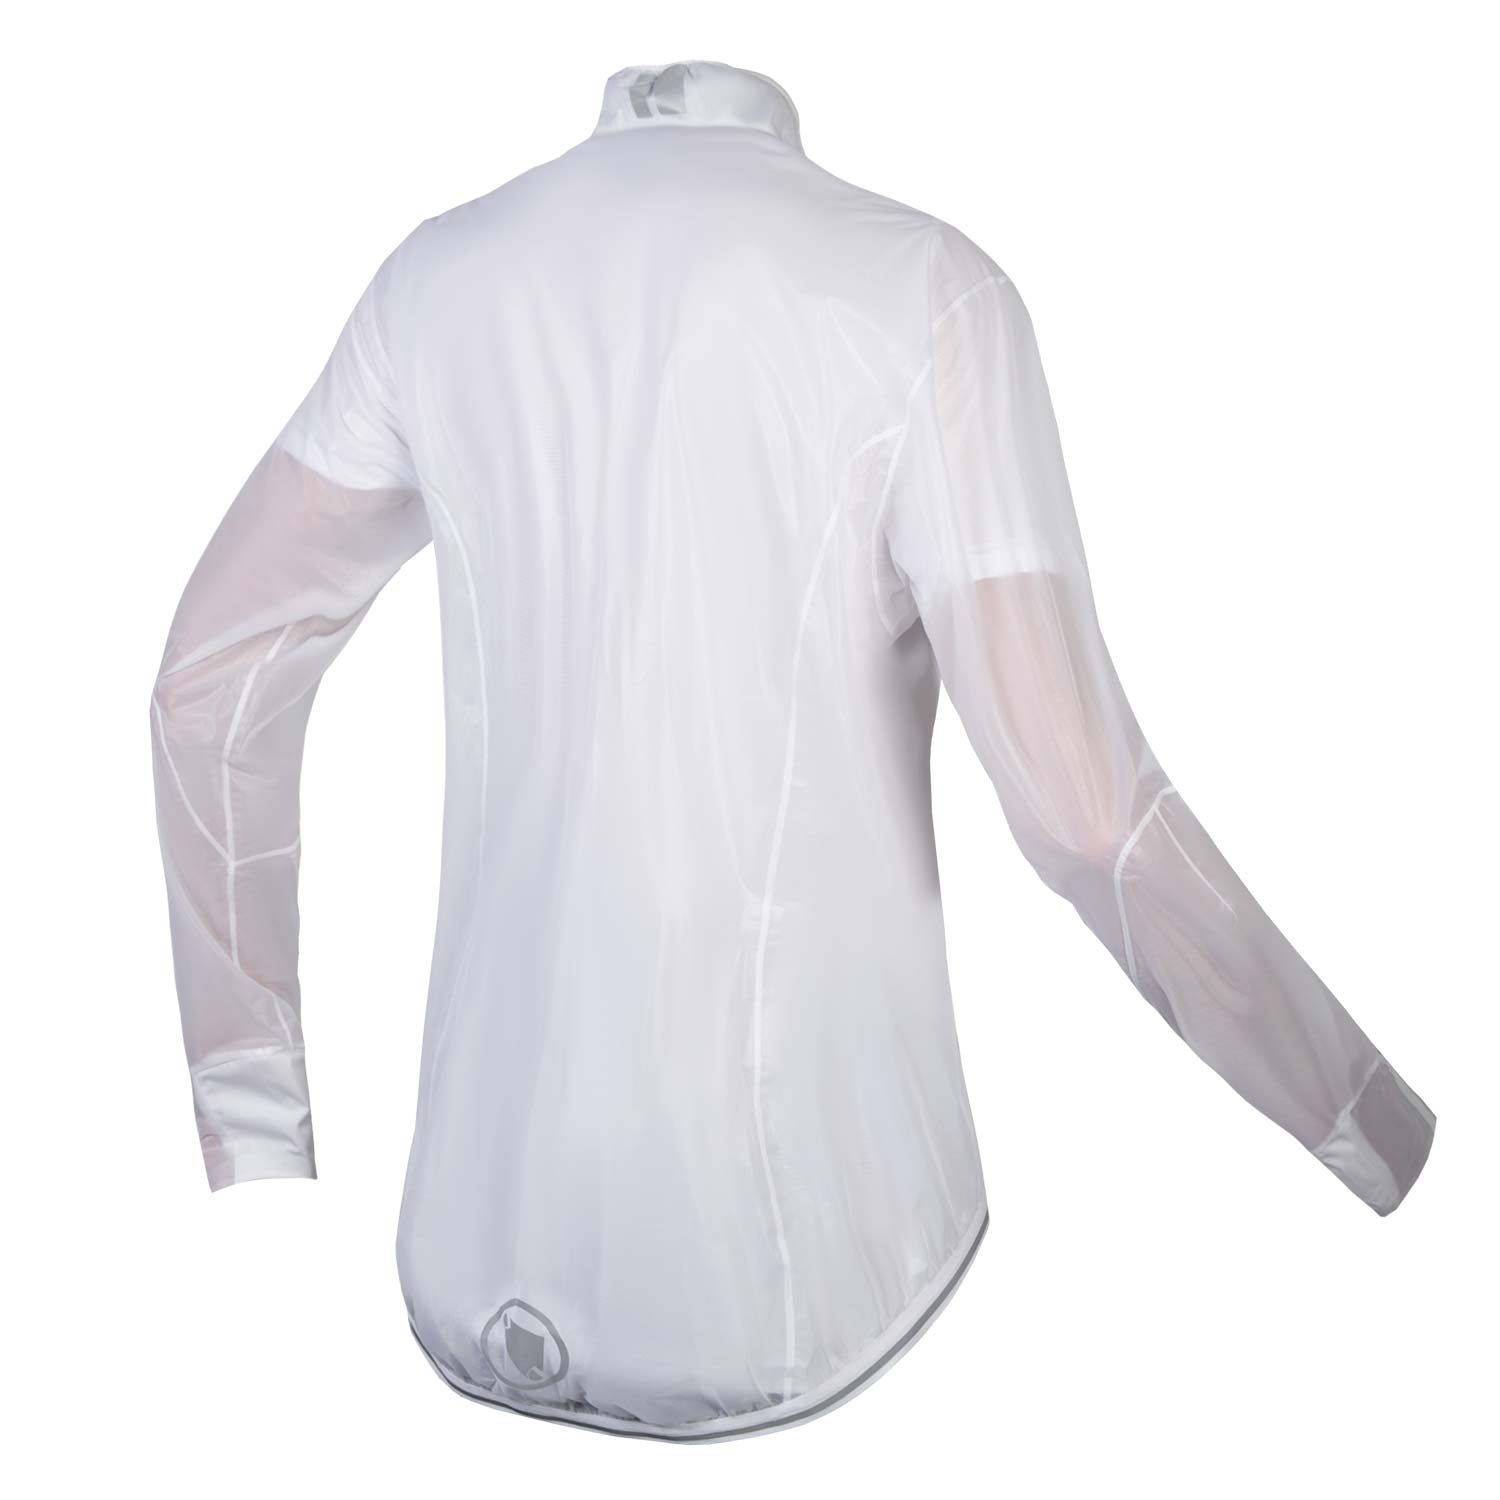 Women's FS260-Pro Adrenaline Race Cape II White